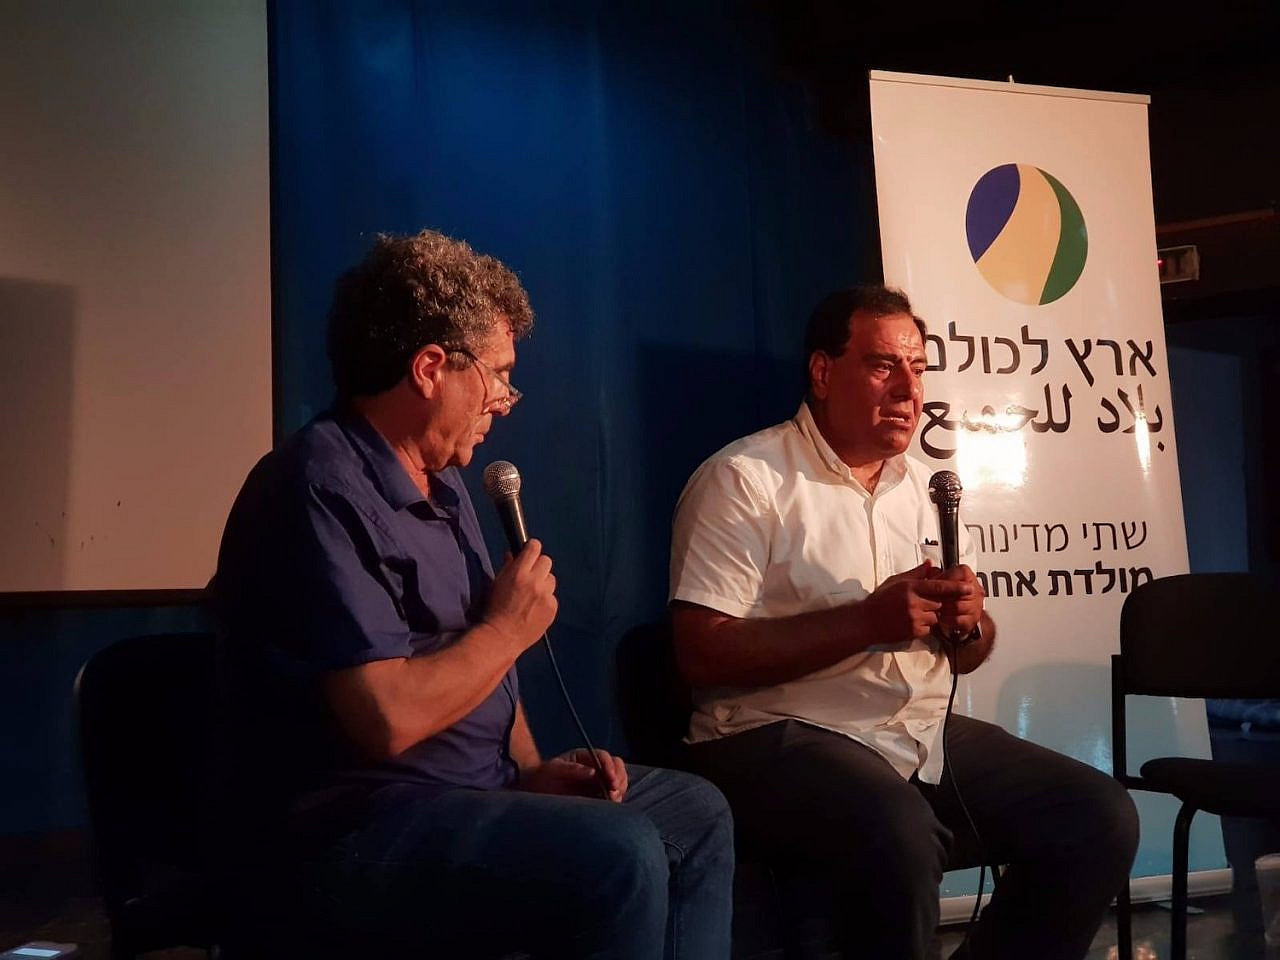 Meron Rapoport and Ez-Adin Abu Al-Aish speaking at A Land for All event in the city of Sderot, August 2018.(Courtesy of Meron Rapoport)